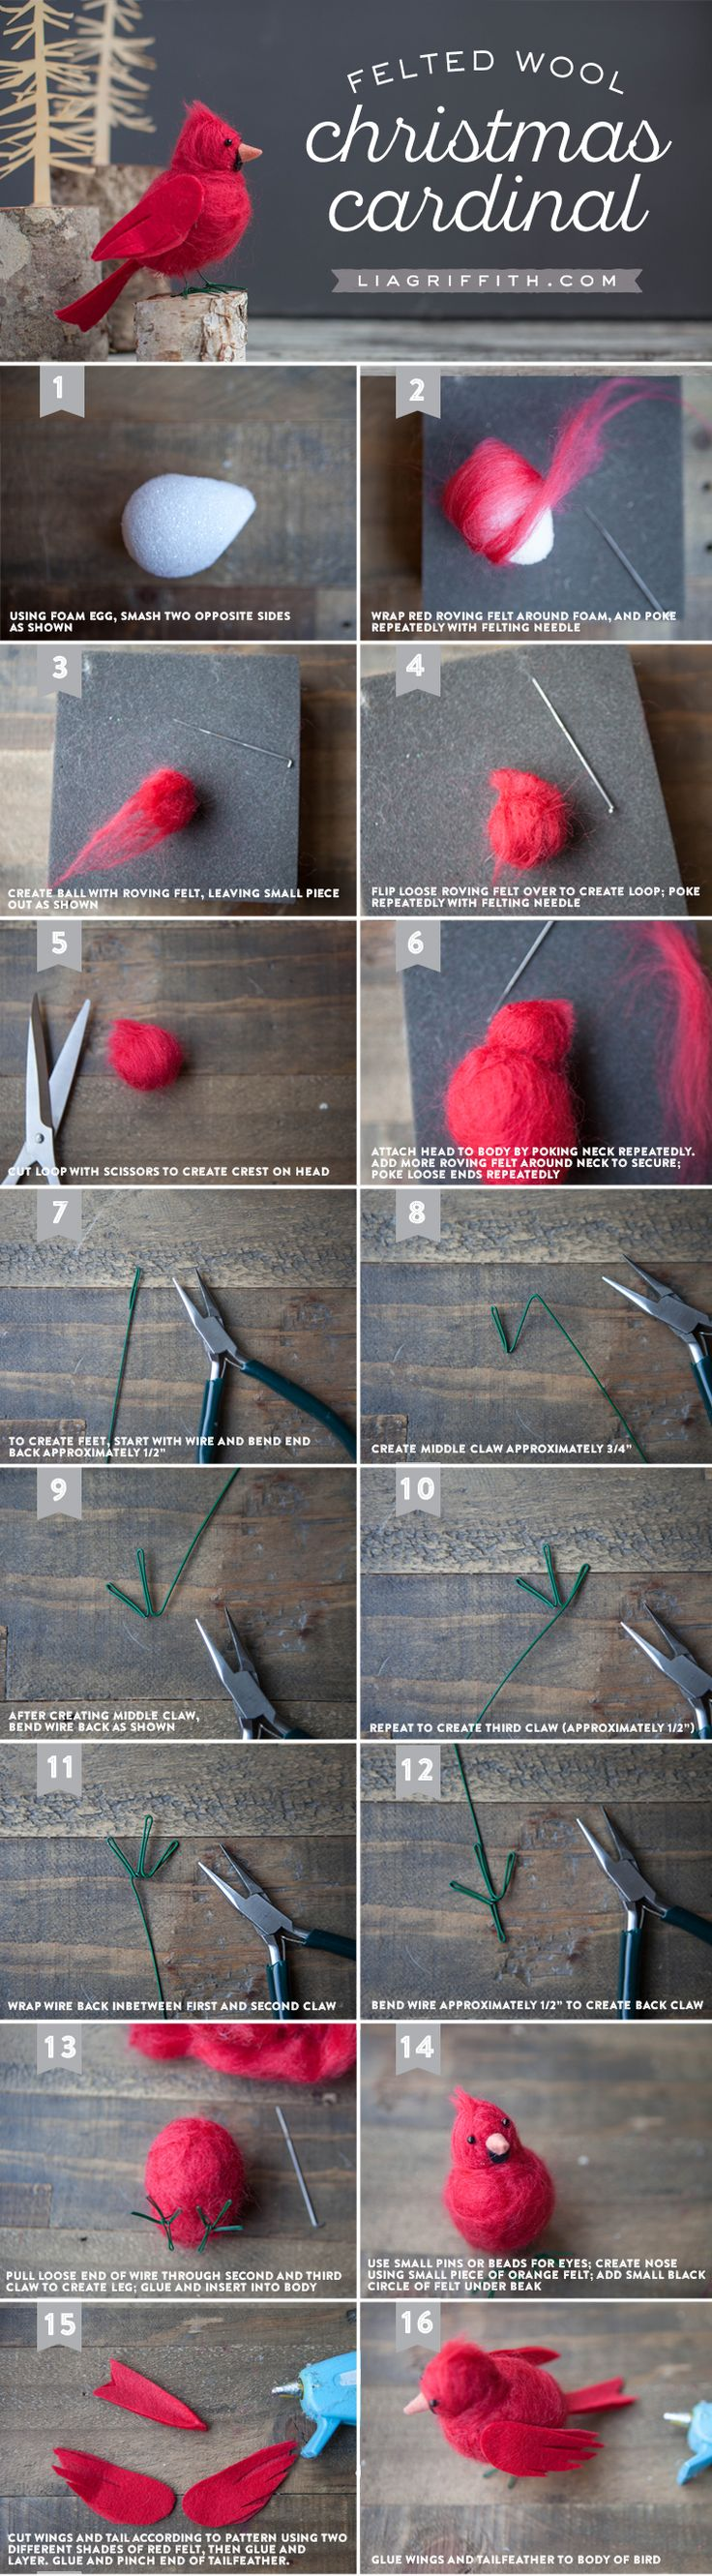 Make your own gorgeous felt cardinal bird to symbolize hope, joy, love, focus and energy. The perfect DIY tutorial by handcrafted lifestyle expert Lia Griffith